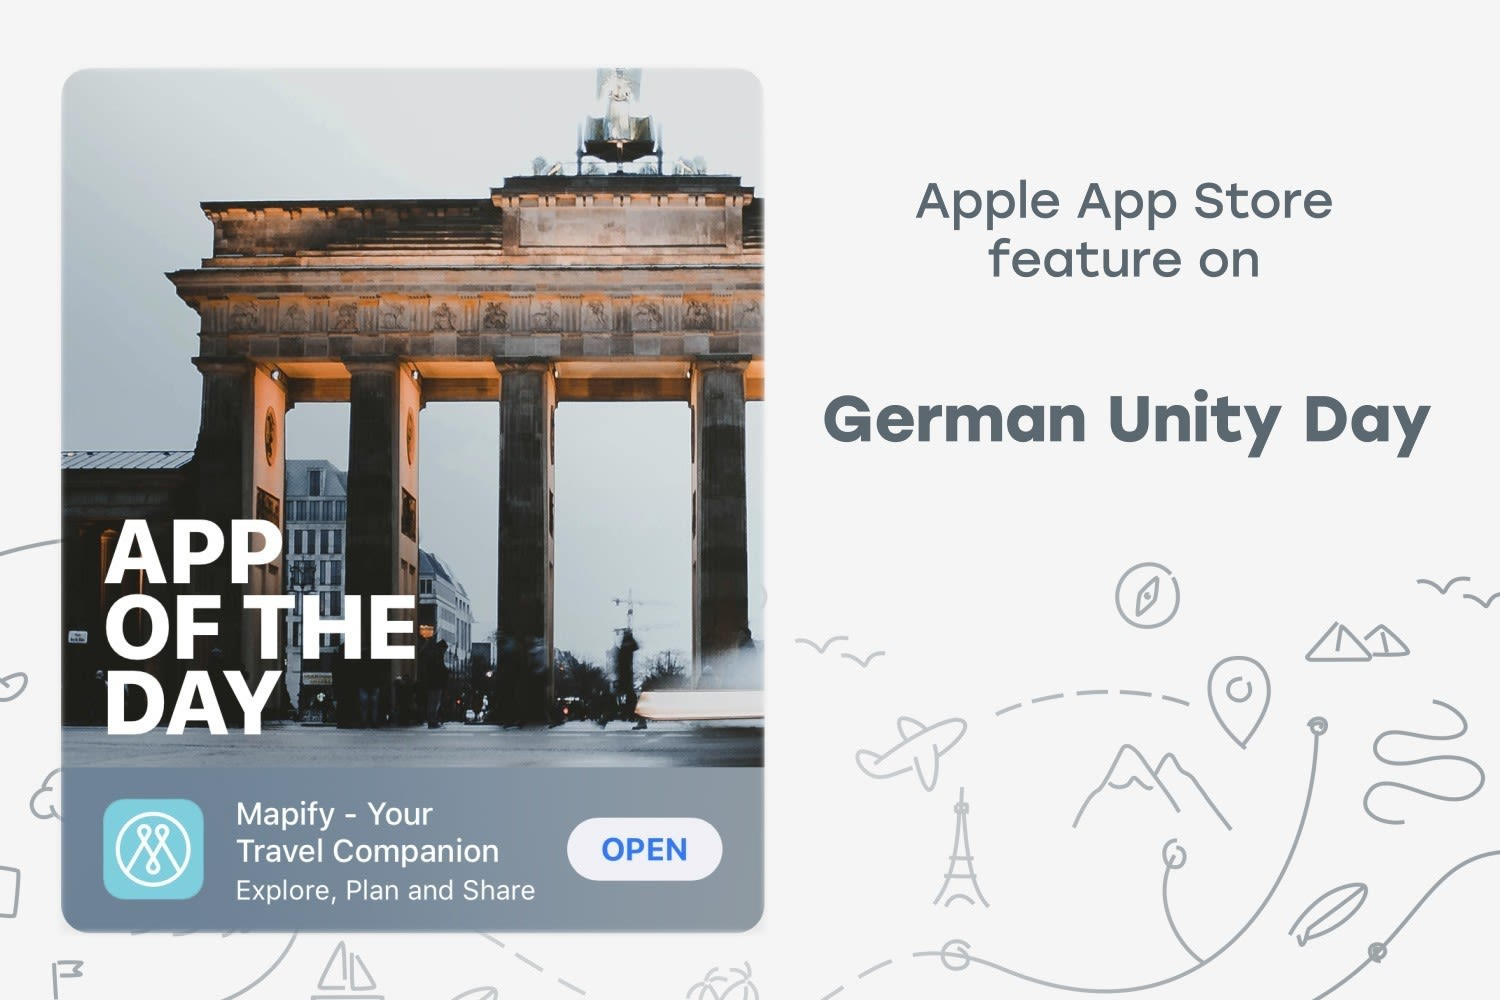 App of the Day on German Unity Day 1